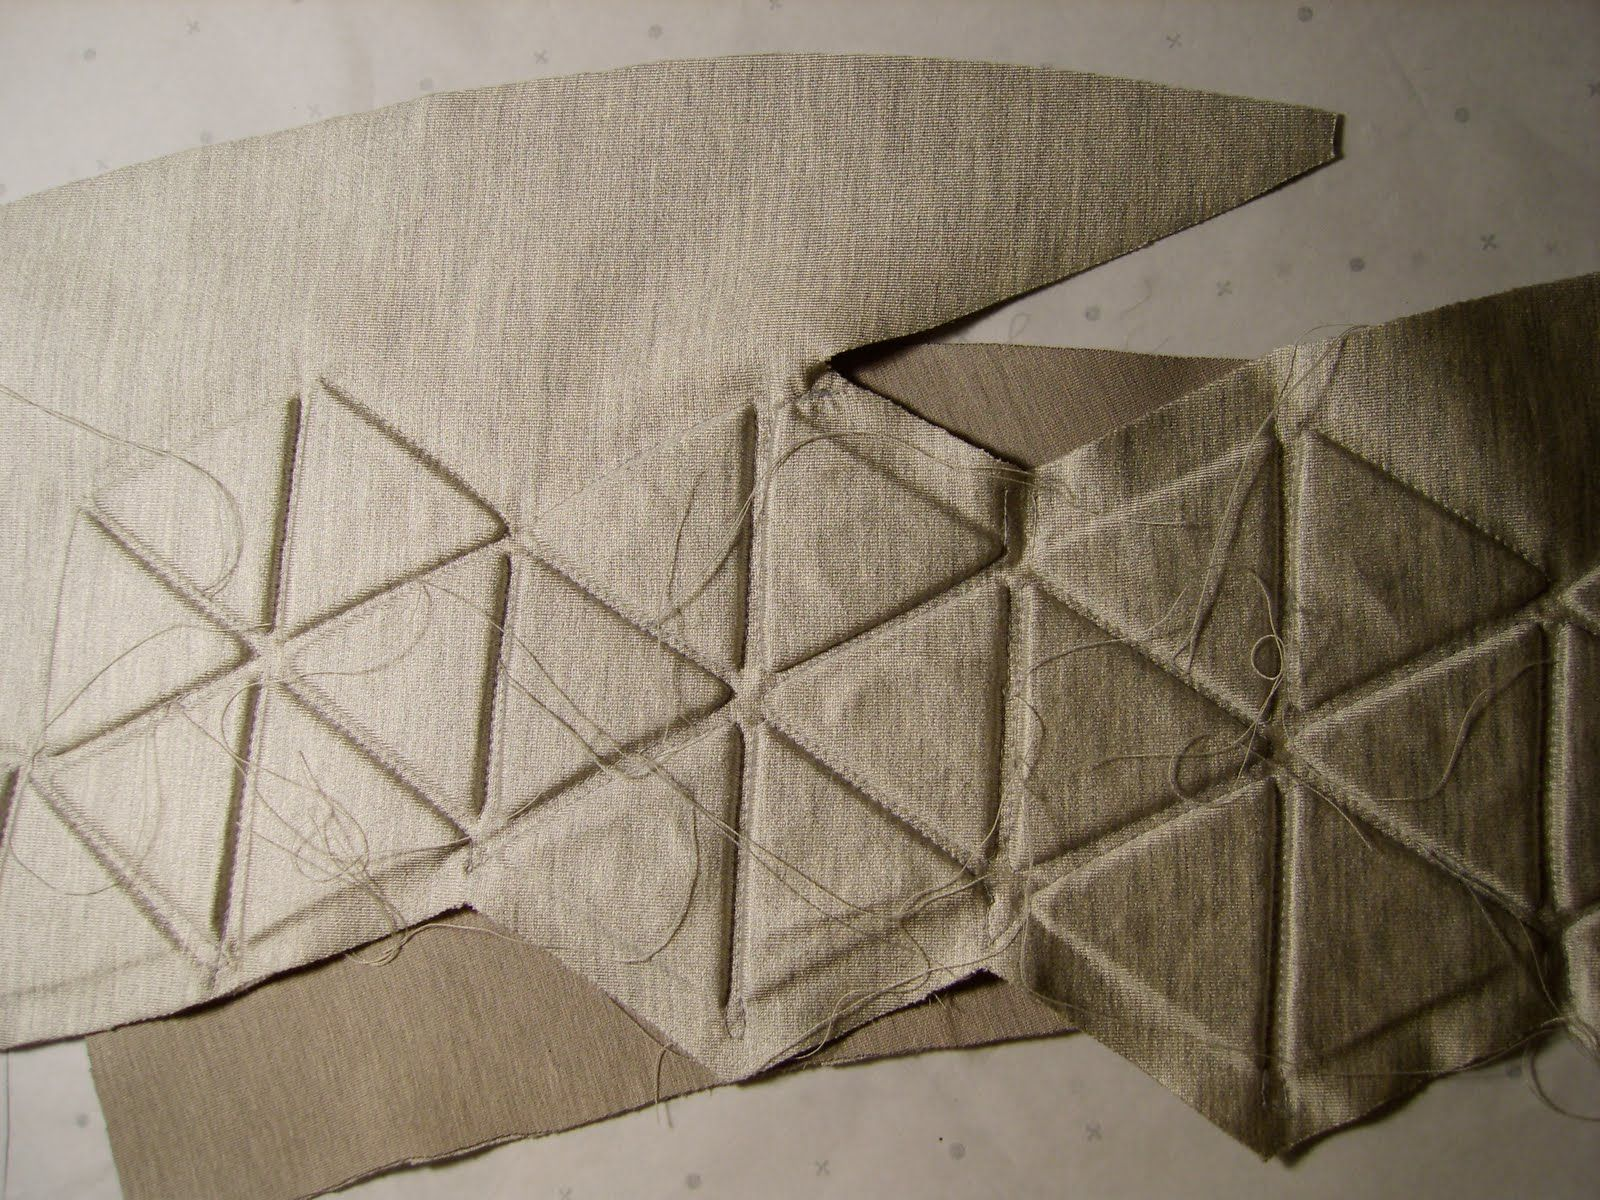 Innovative Textiles Design - 2D triangles stitched together & later folded into a geometric 3D garment; fabric manipulation for fashion // Rachel Poulter